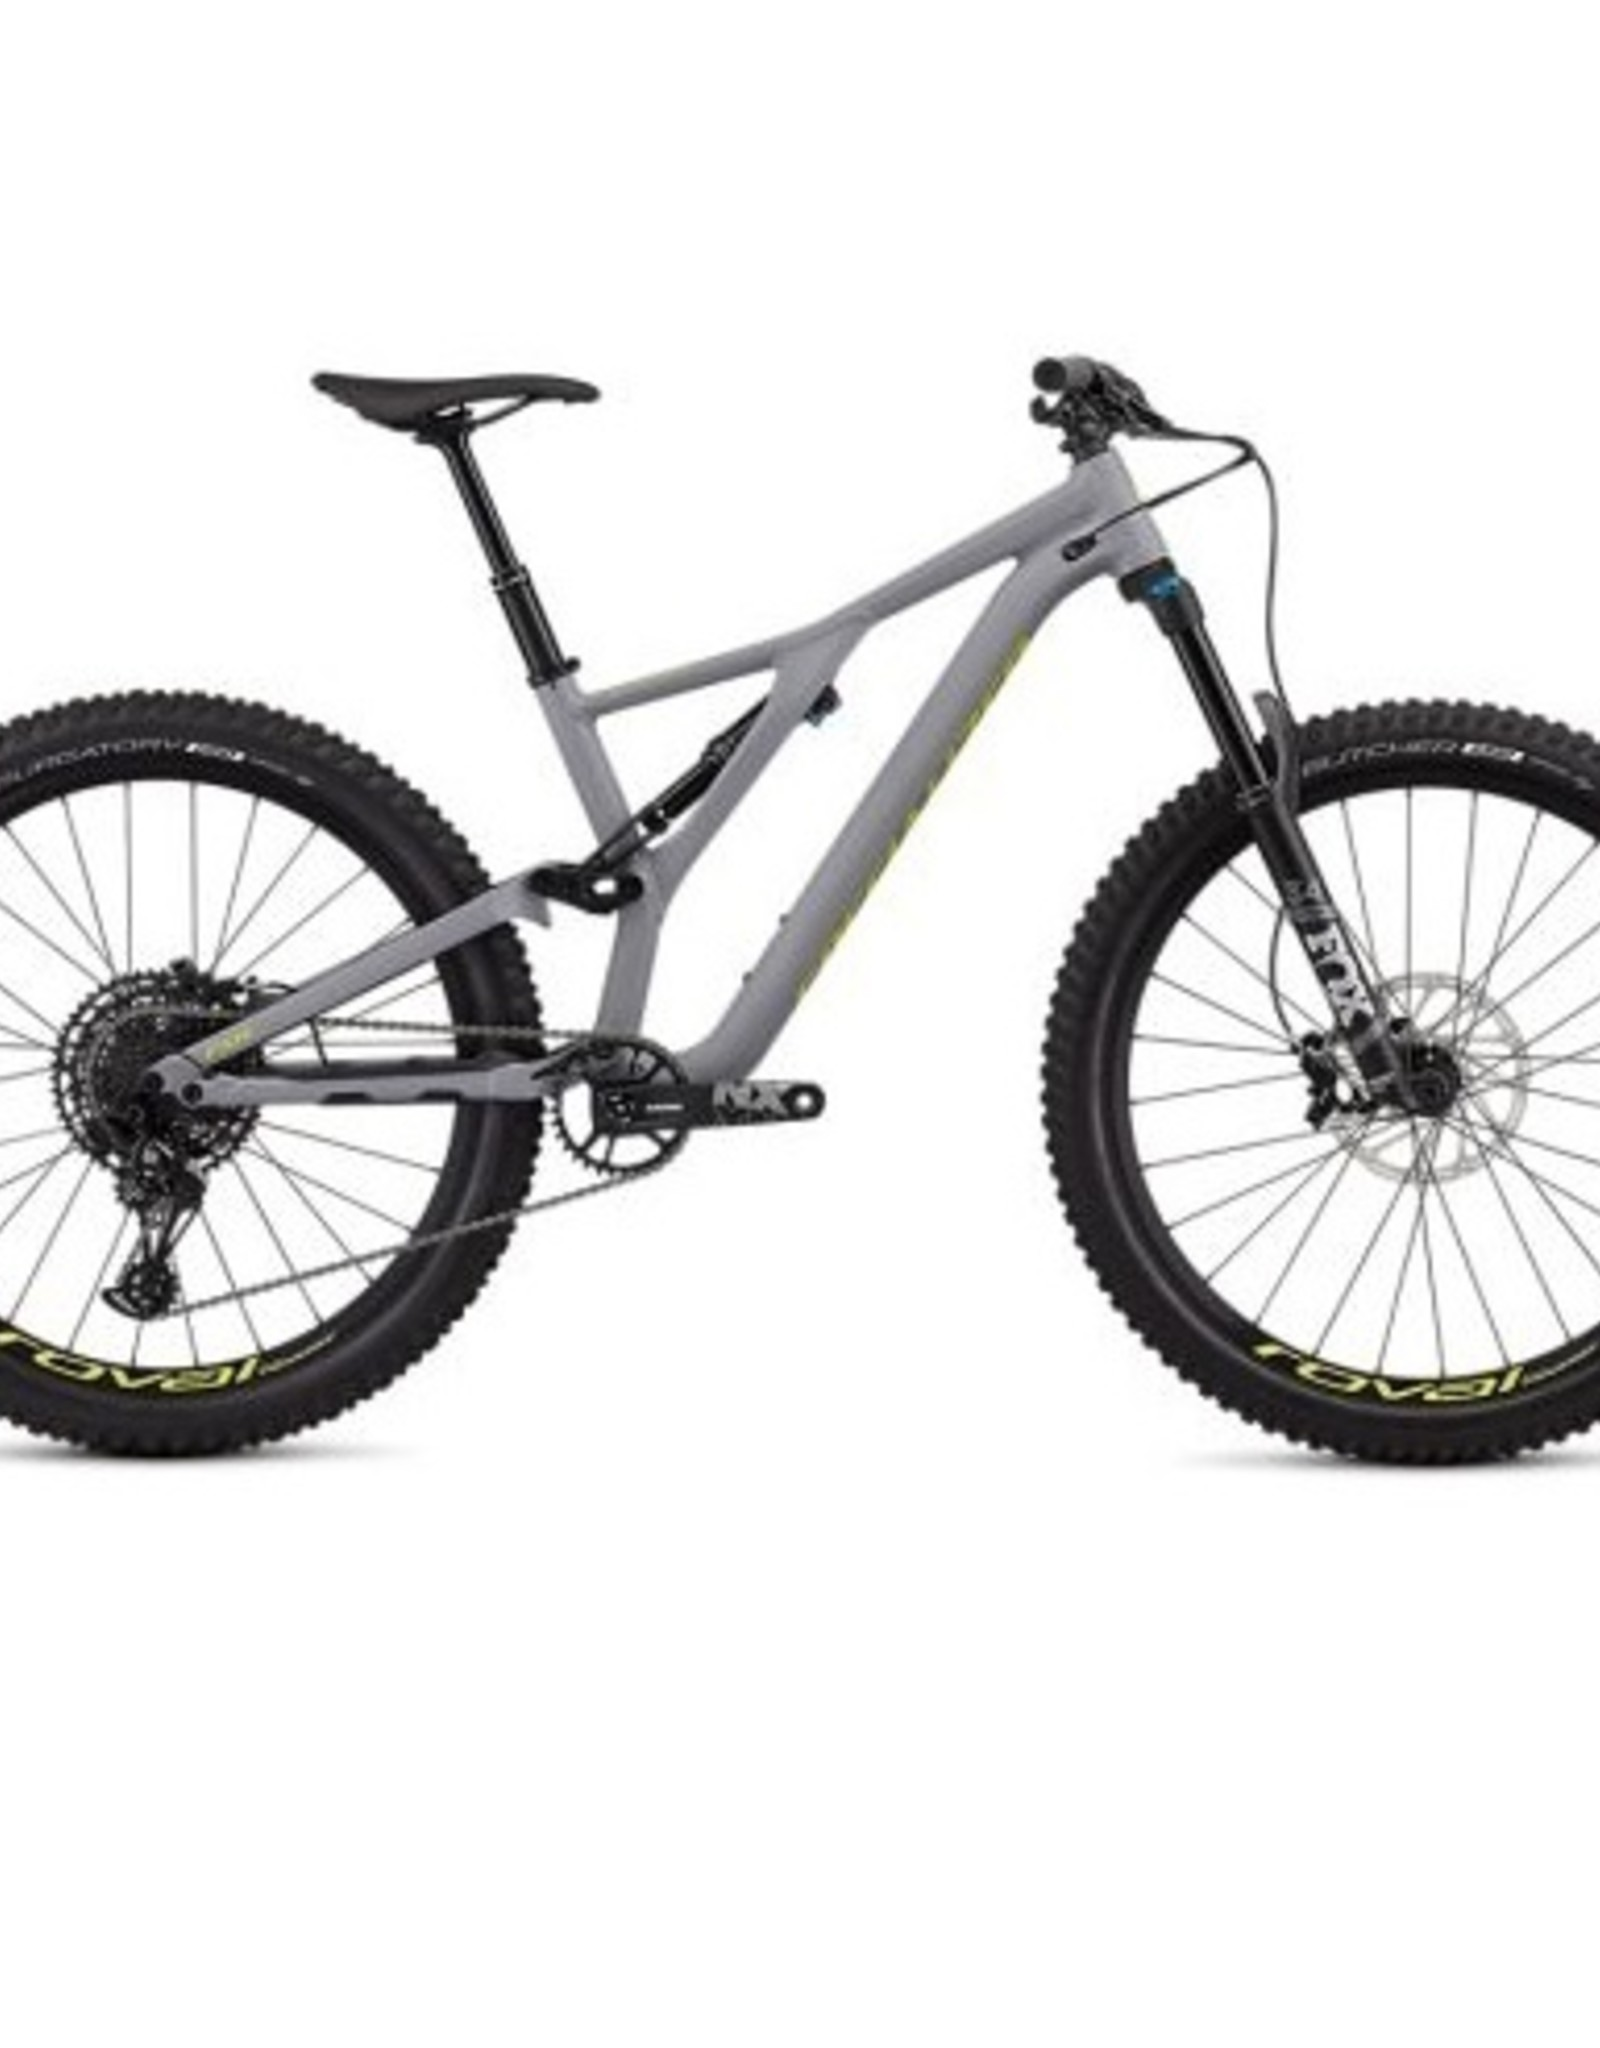 Specialized Specialized Stumpjumper FSR Comp 27.5 12-Speed 2019 Grey/Yellow Bicycle L